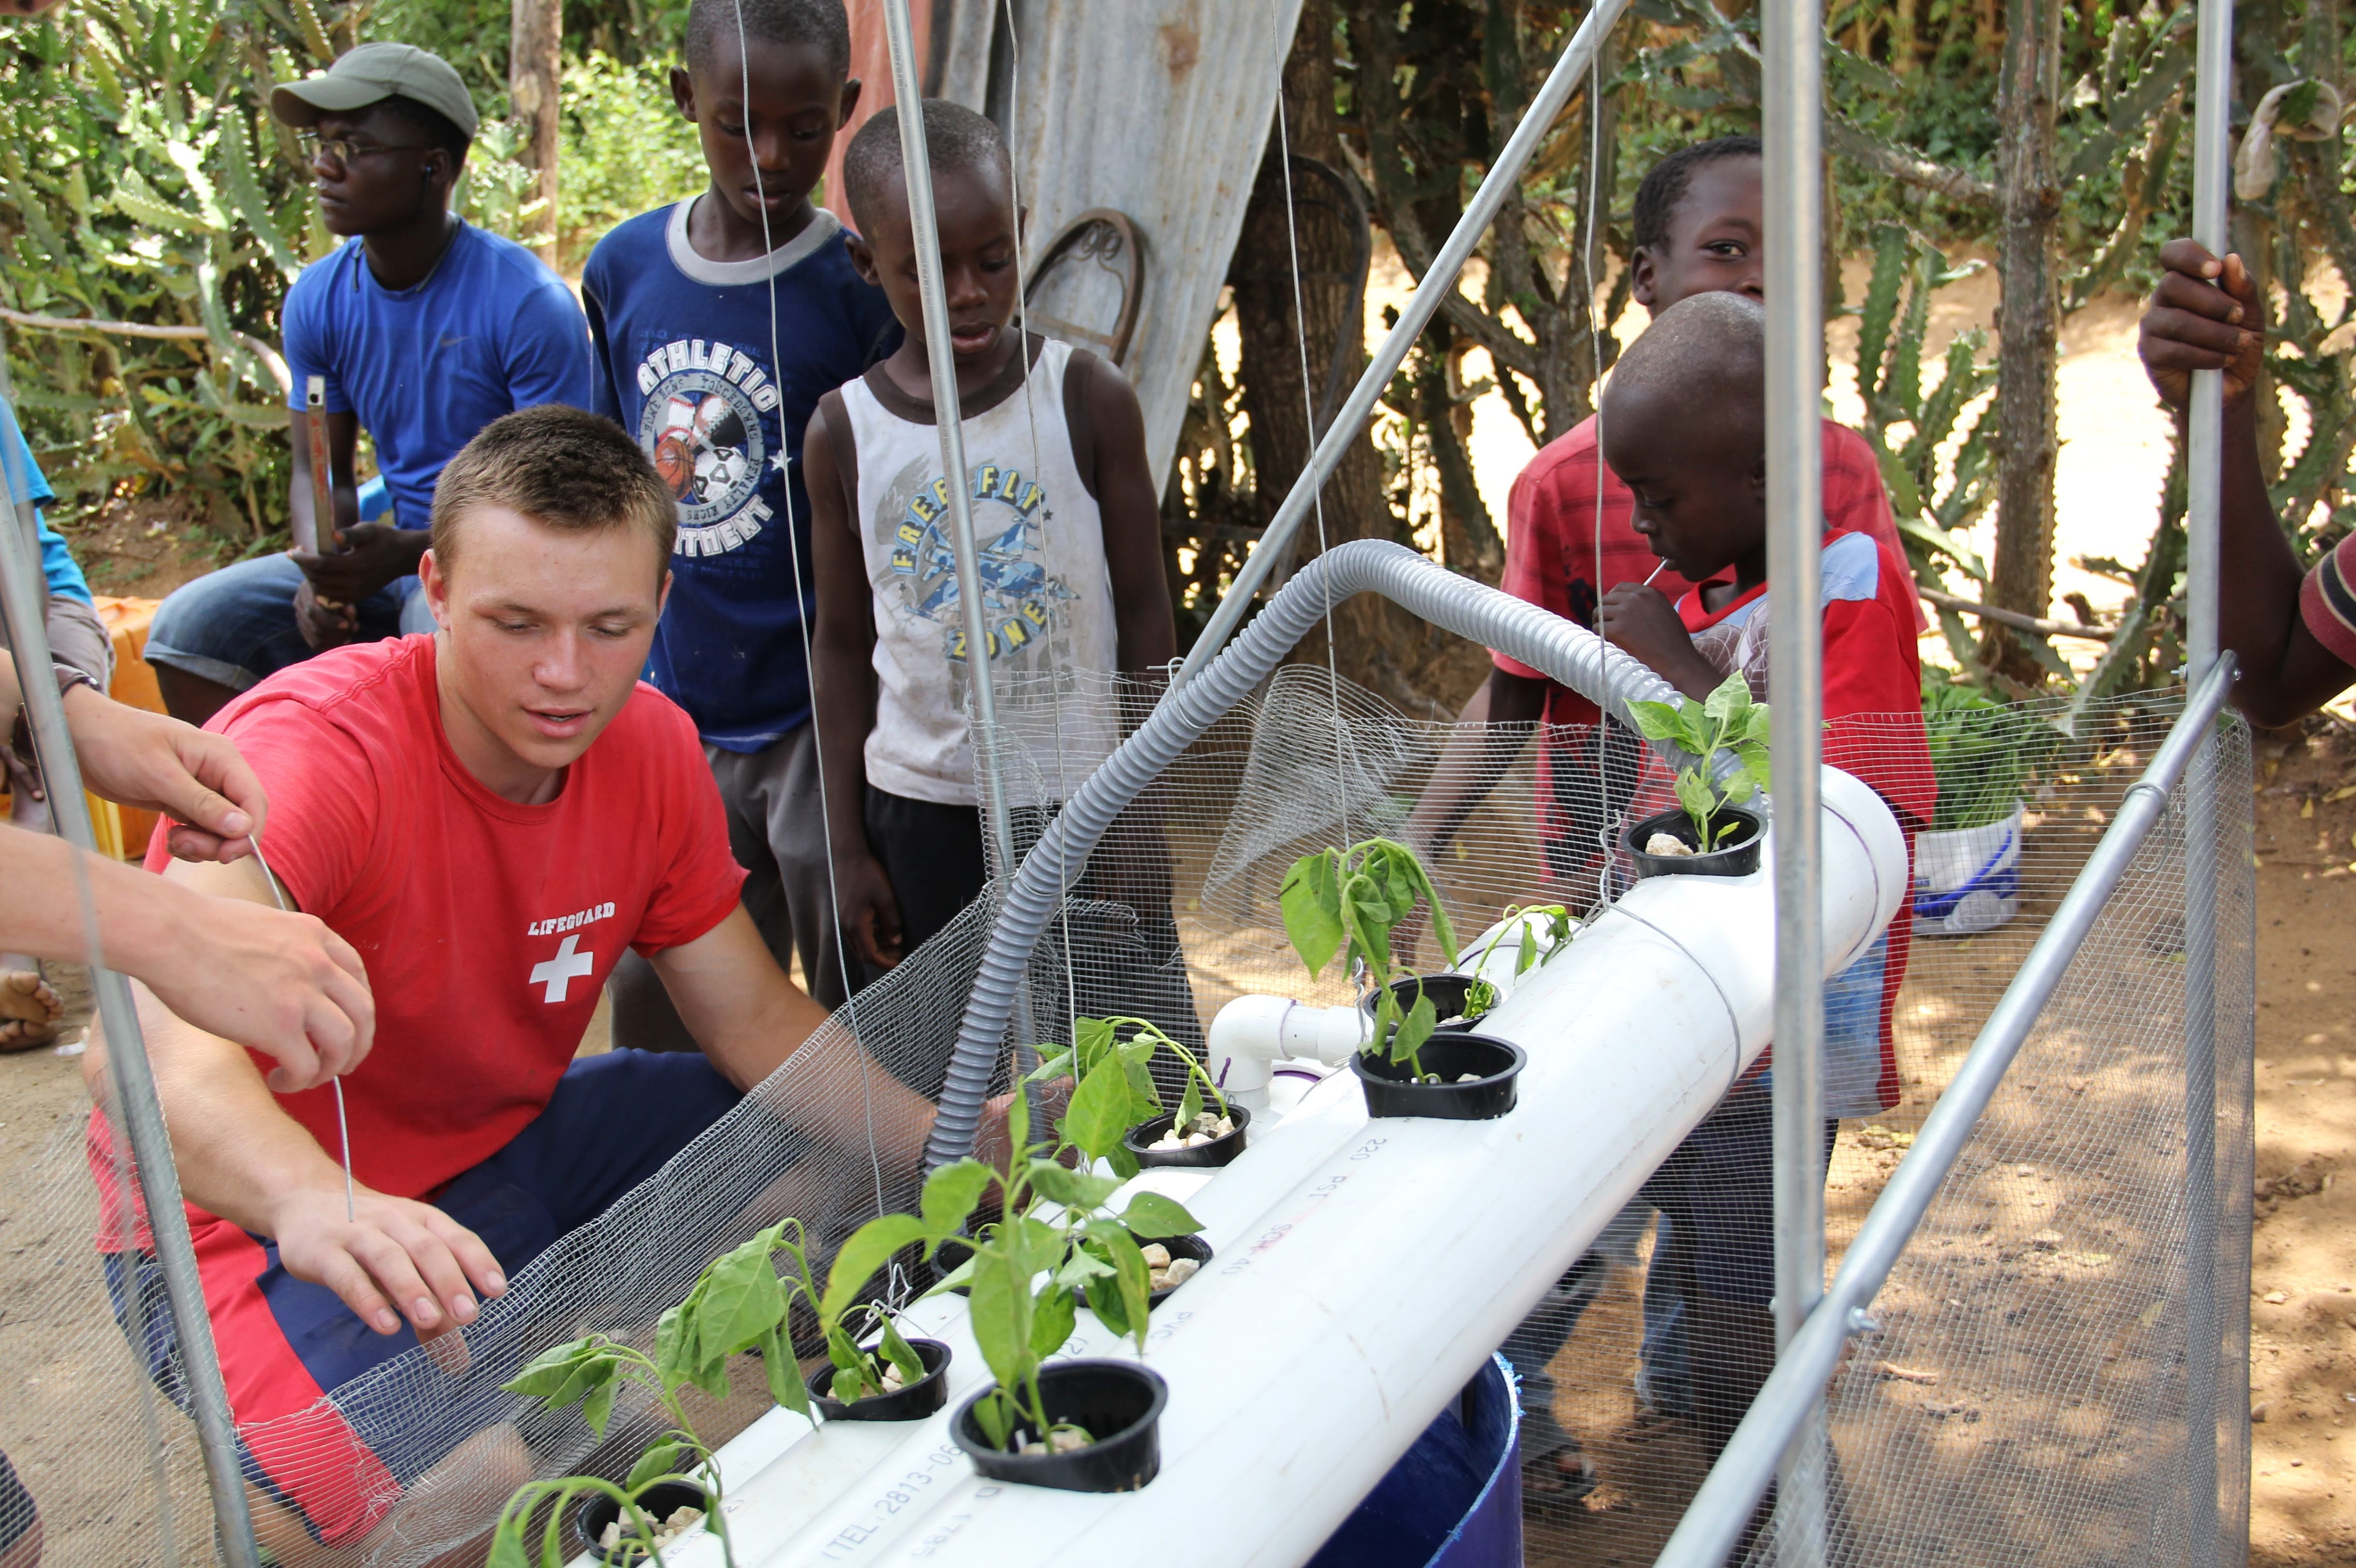 Christian Heiden '20 (ENG) started a non-profit organization called Levo International to bring hydroponics to those in need in Haiti.